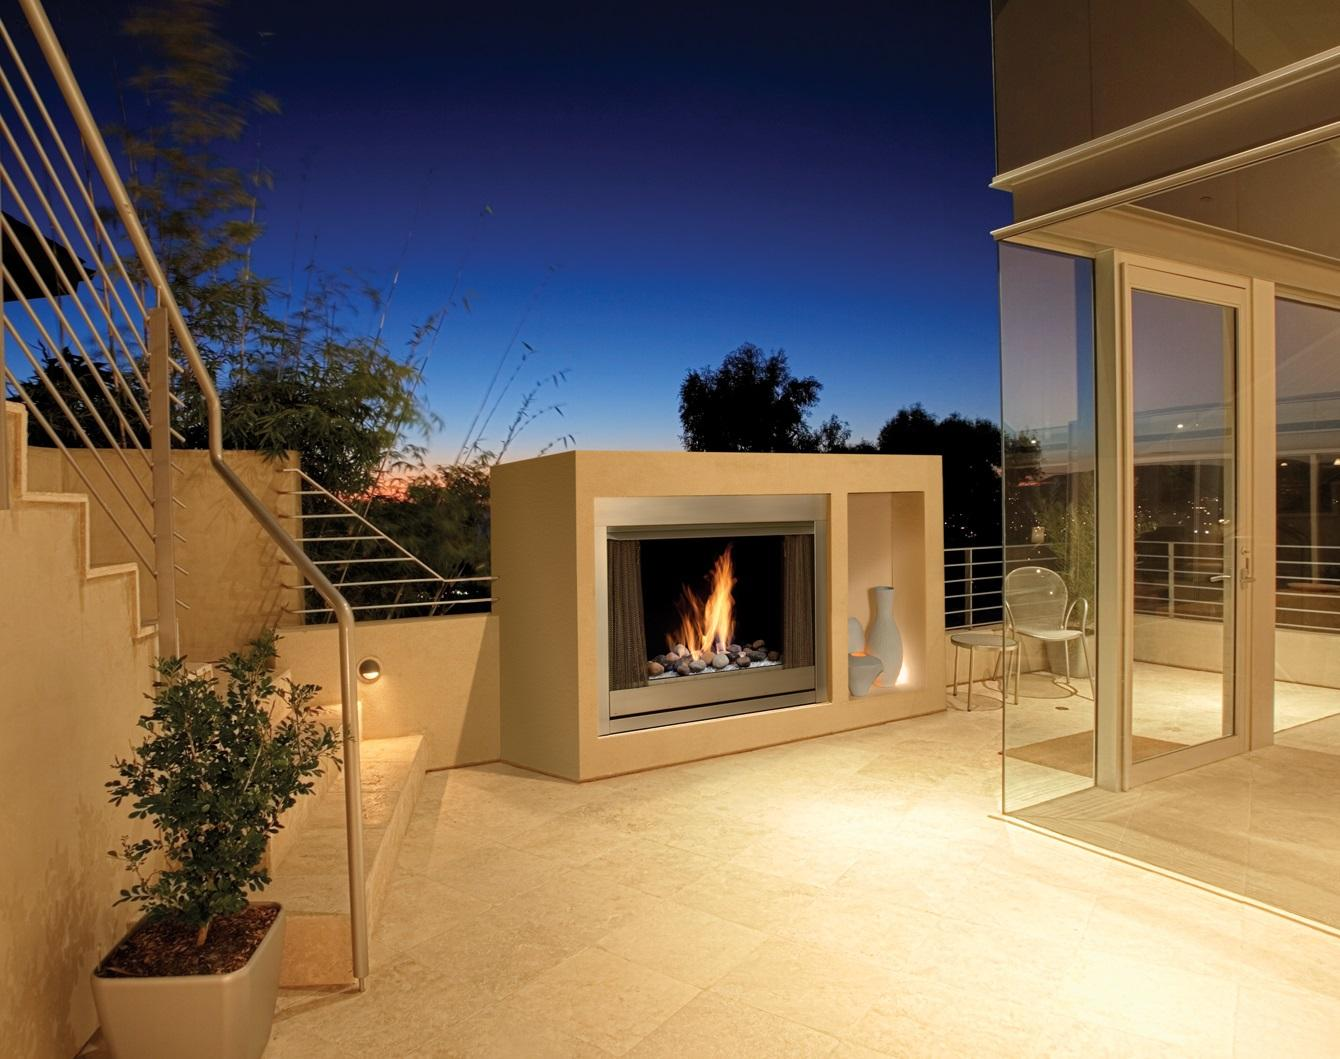 Fireplace Online Store & Remodel Fireplace Services In San